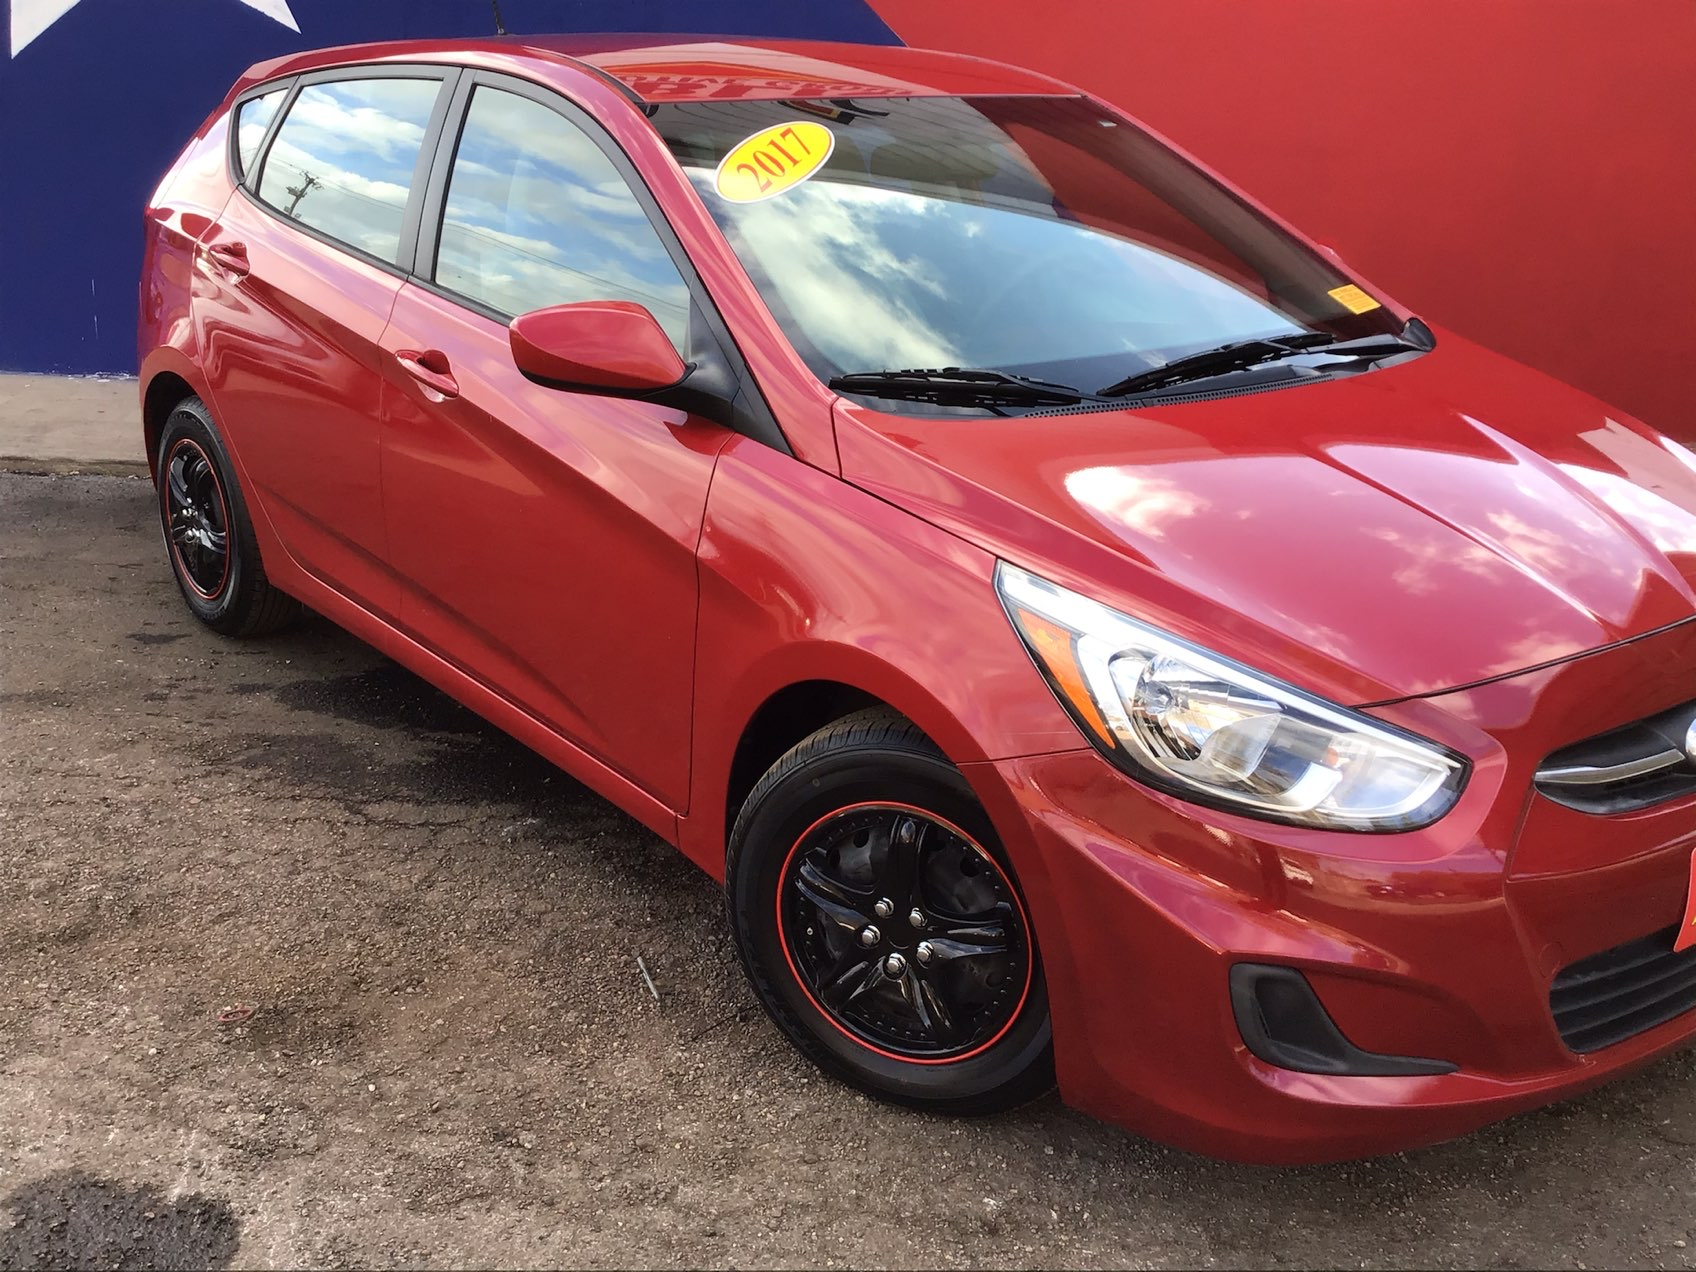 used vehicle - Sedan HYUNDAI ACCENT 2017